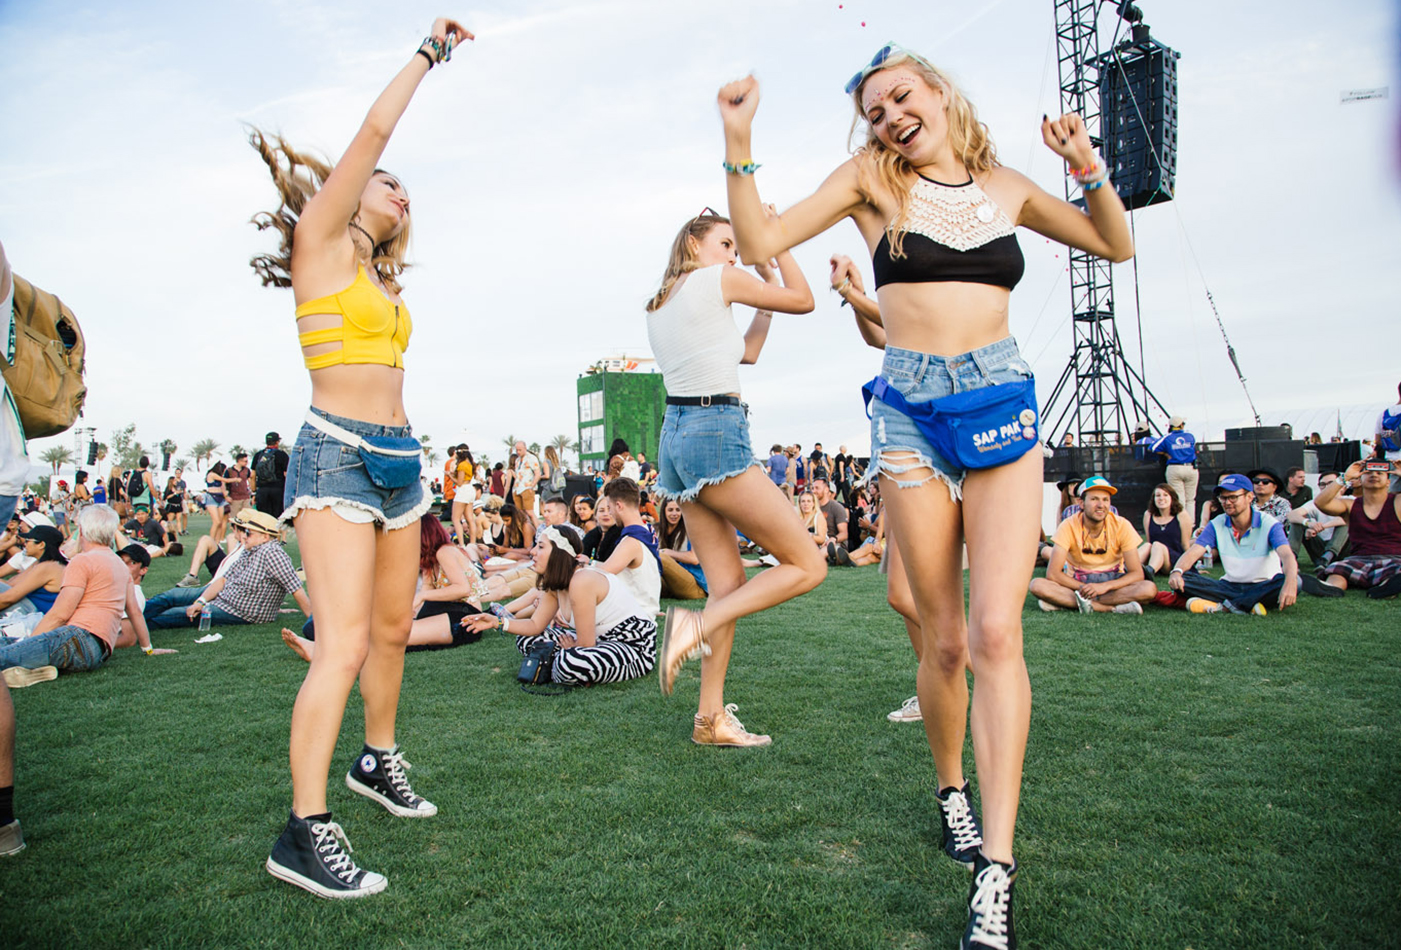 Fashion Weekend: See What Fans Wore to Coachella 2015 Pictures